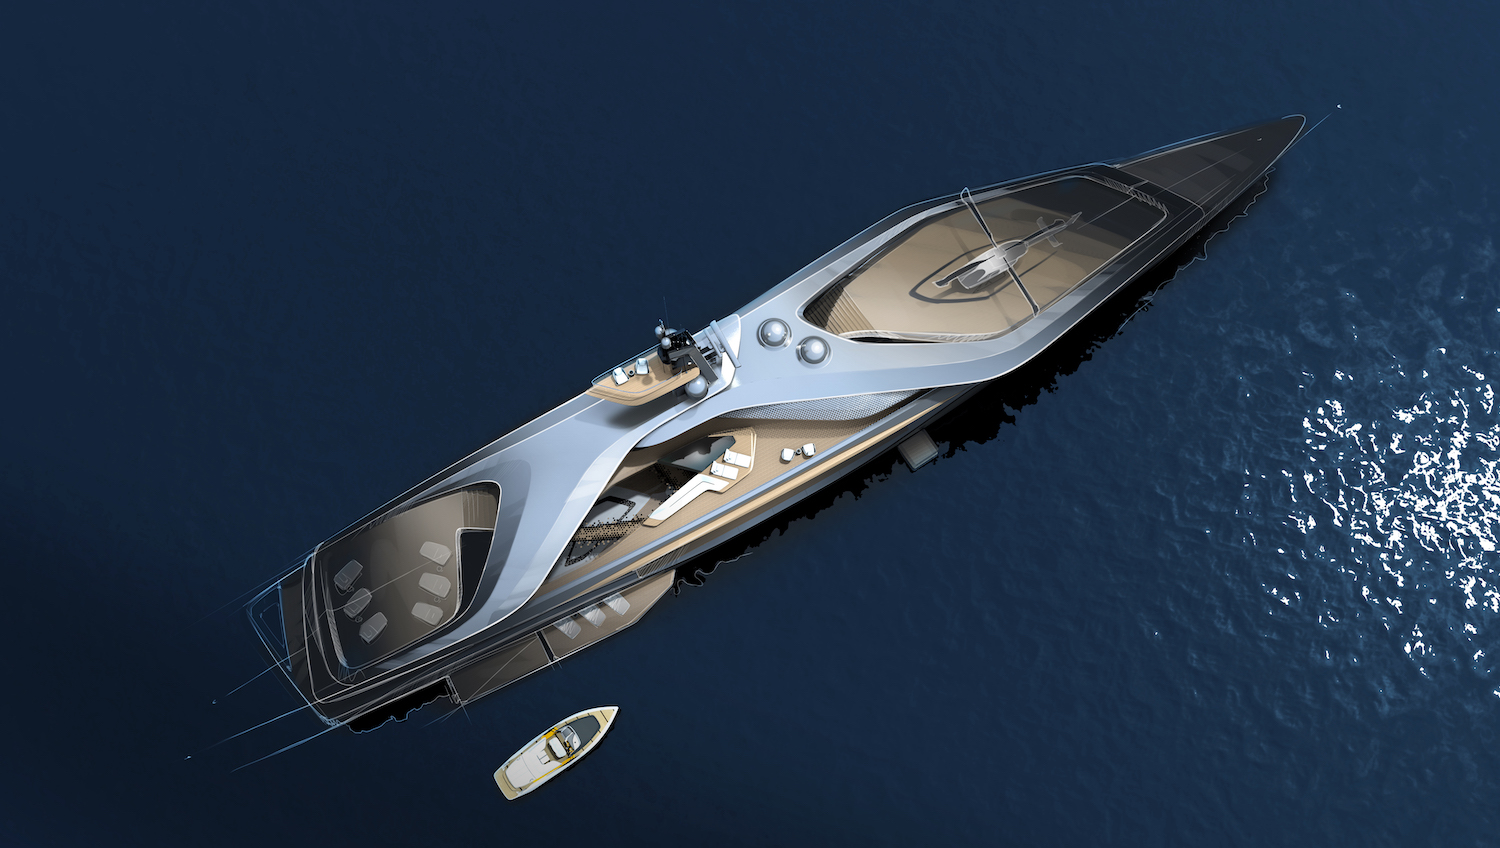 Pininfarina collaborates with Oceanco and Lateral to reimagine yacht design